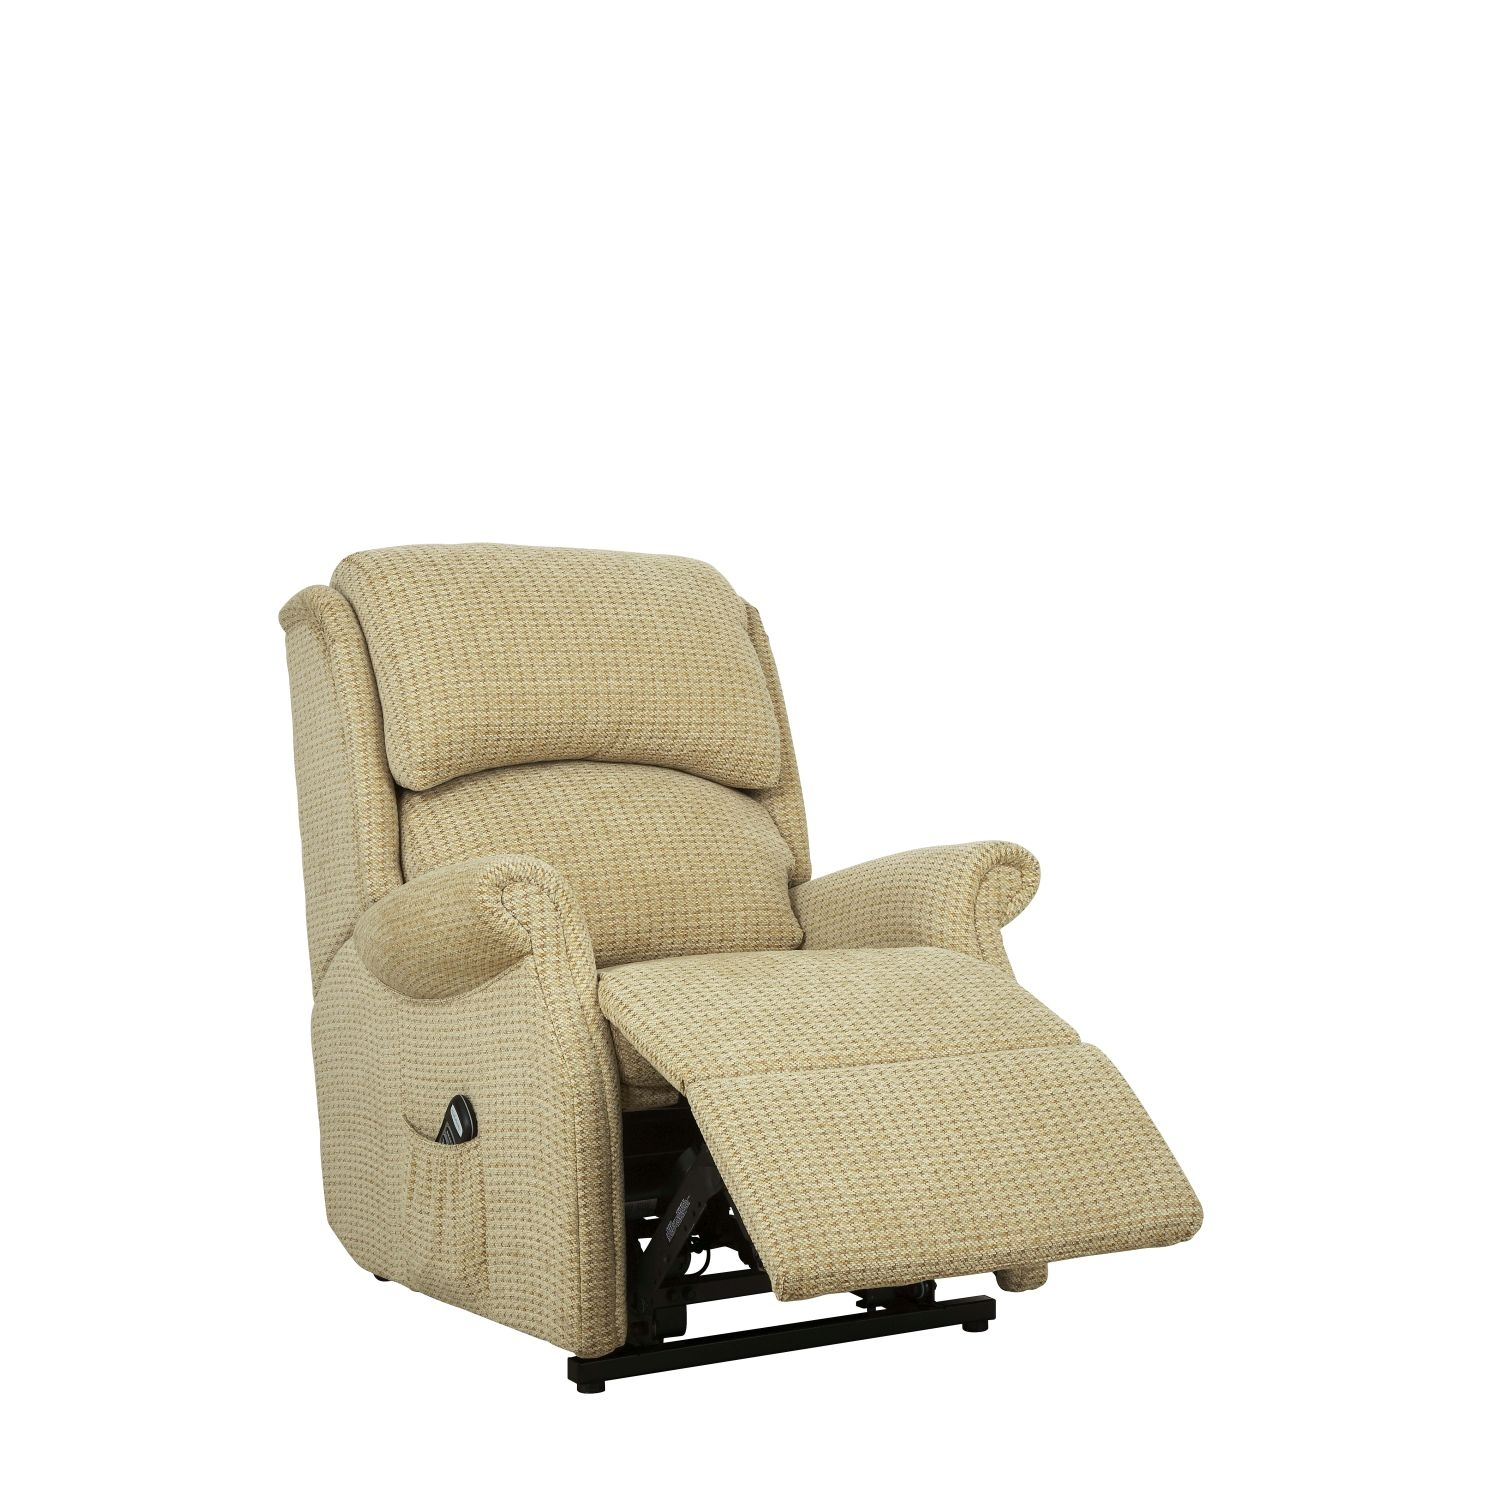 Image of Celebrity Regent Power Recliner Fabric Chair